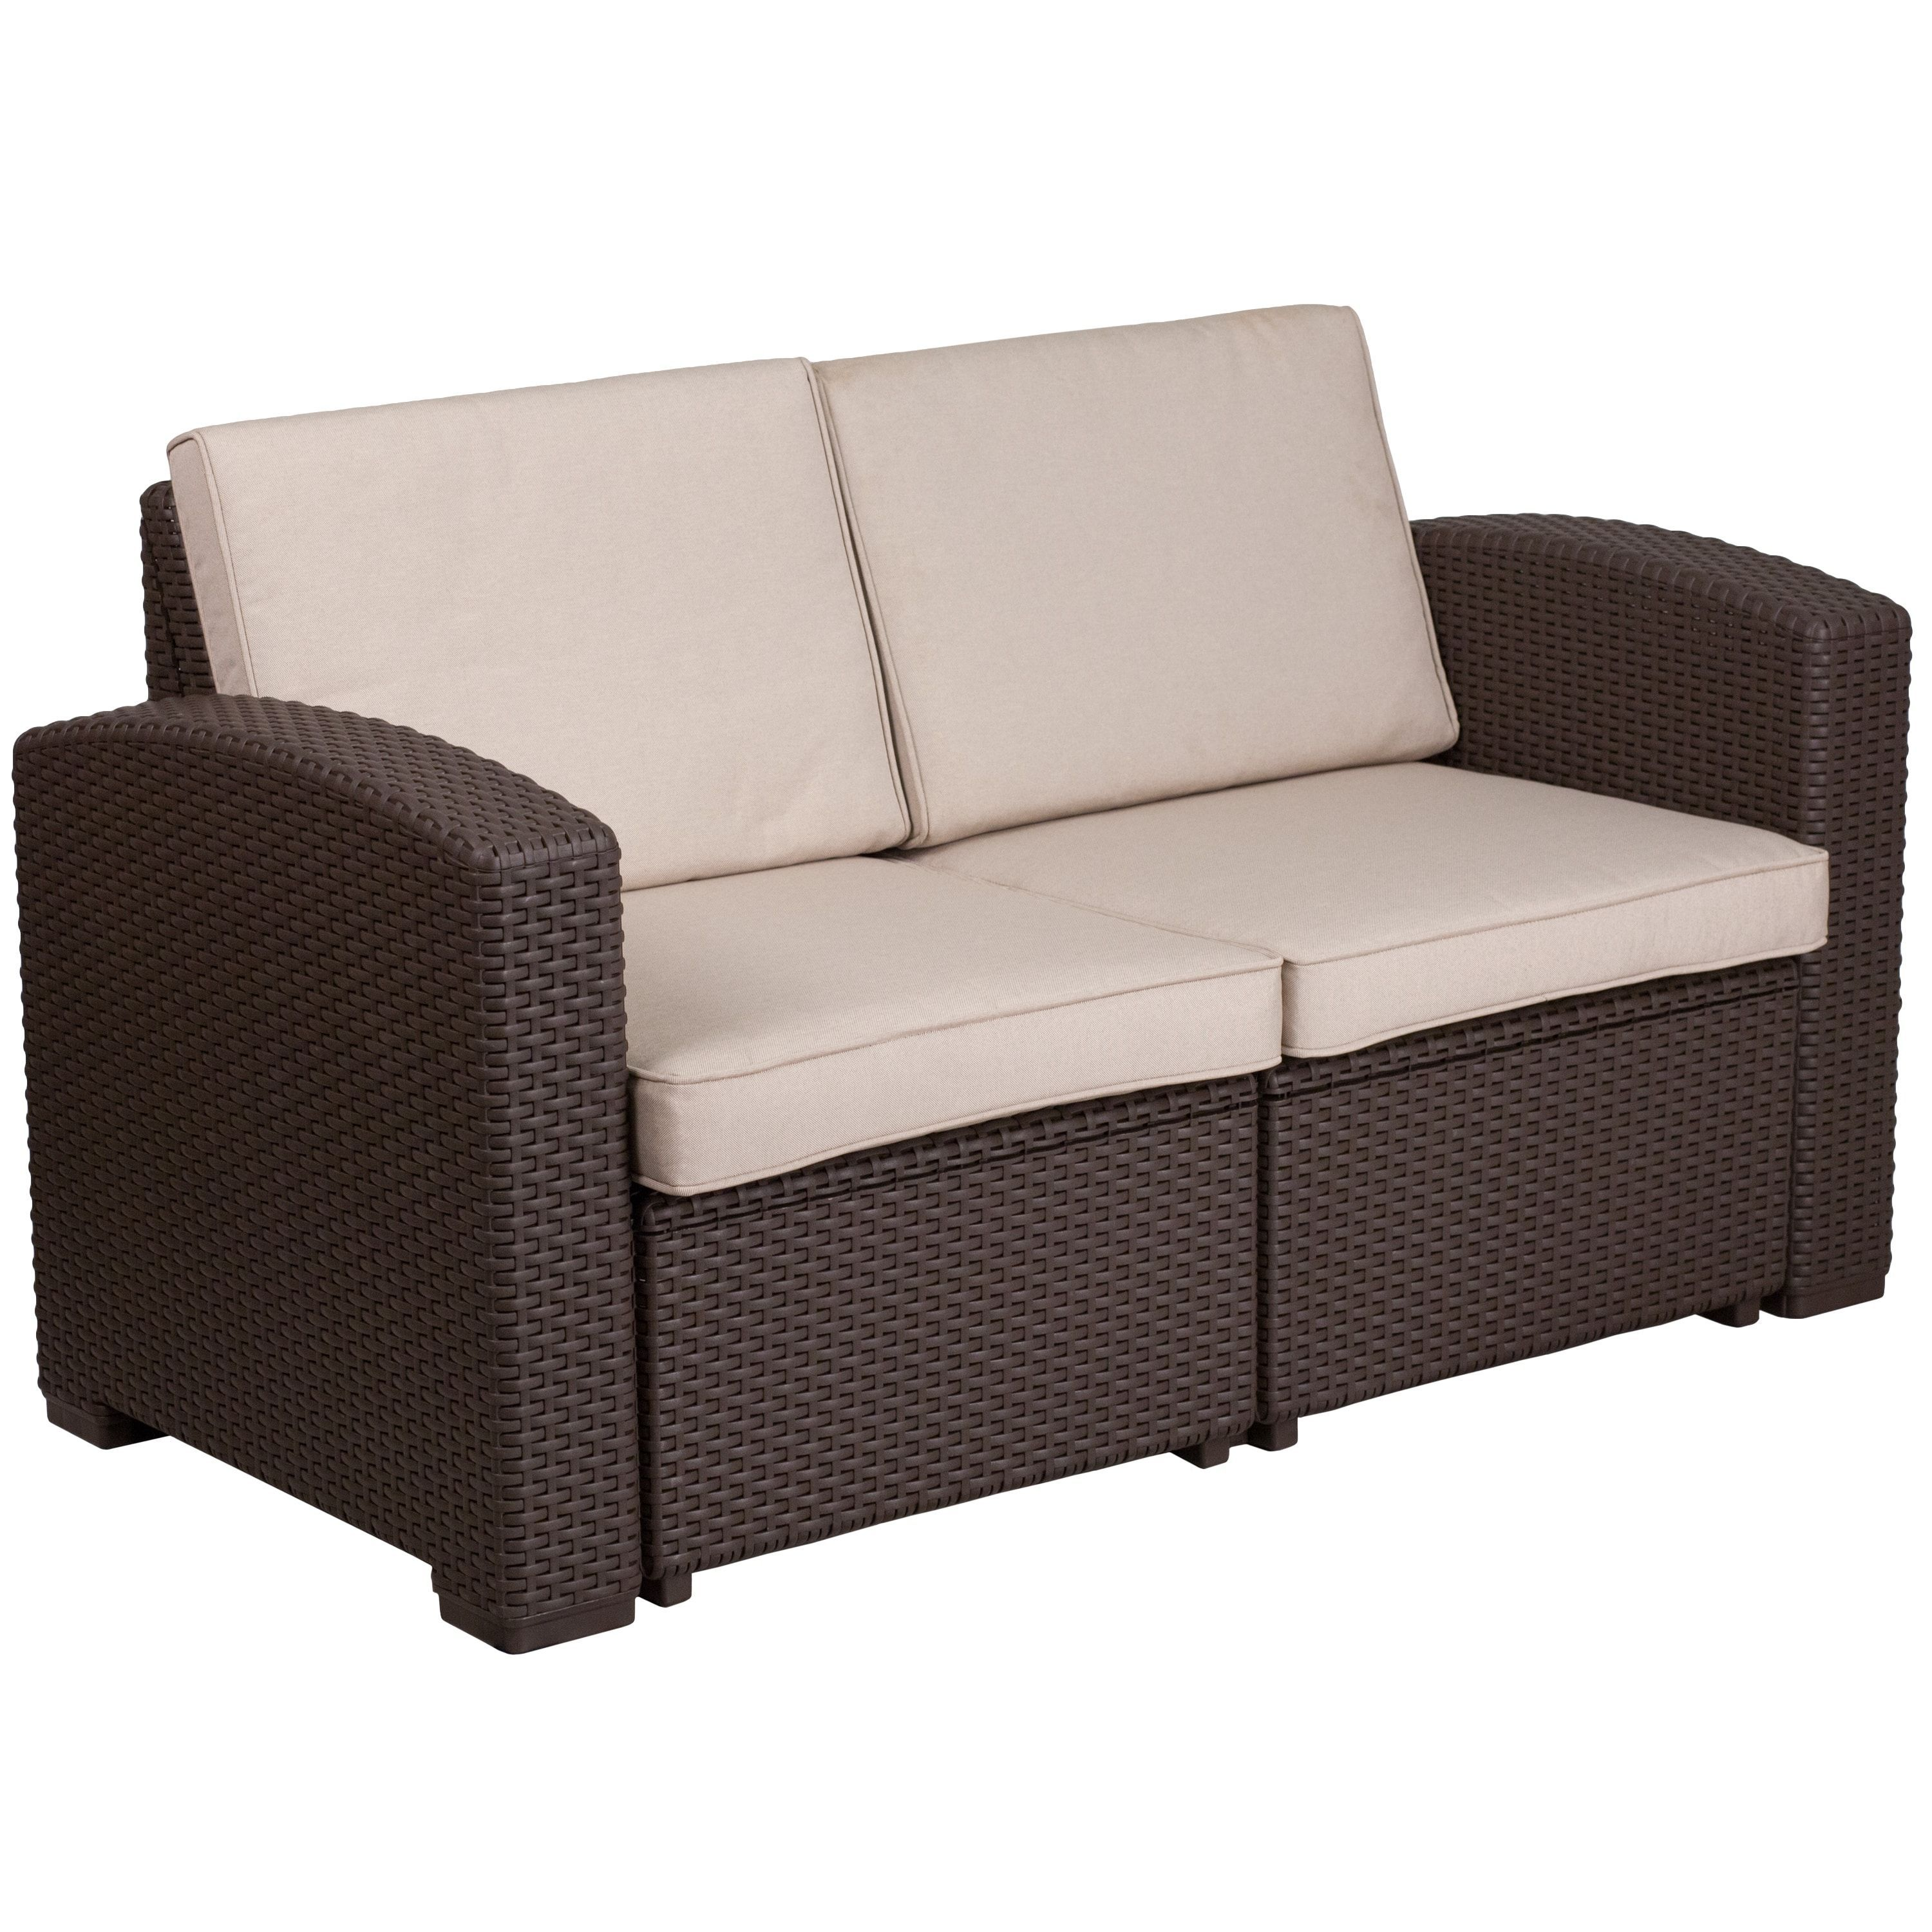 Faux Rattan Loveseat With All Weather Cushions Chocolate Brown